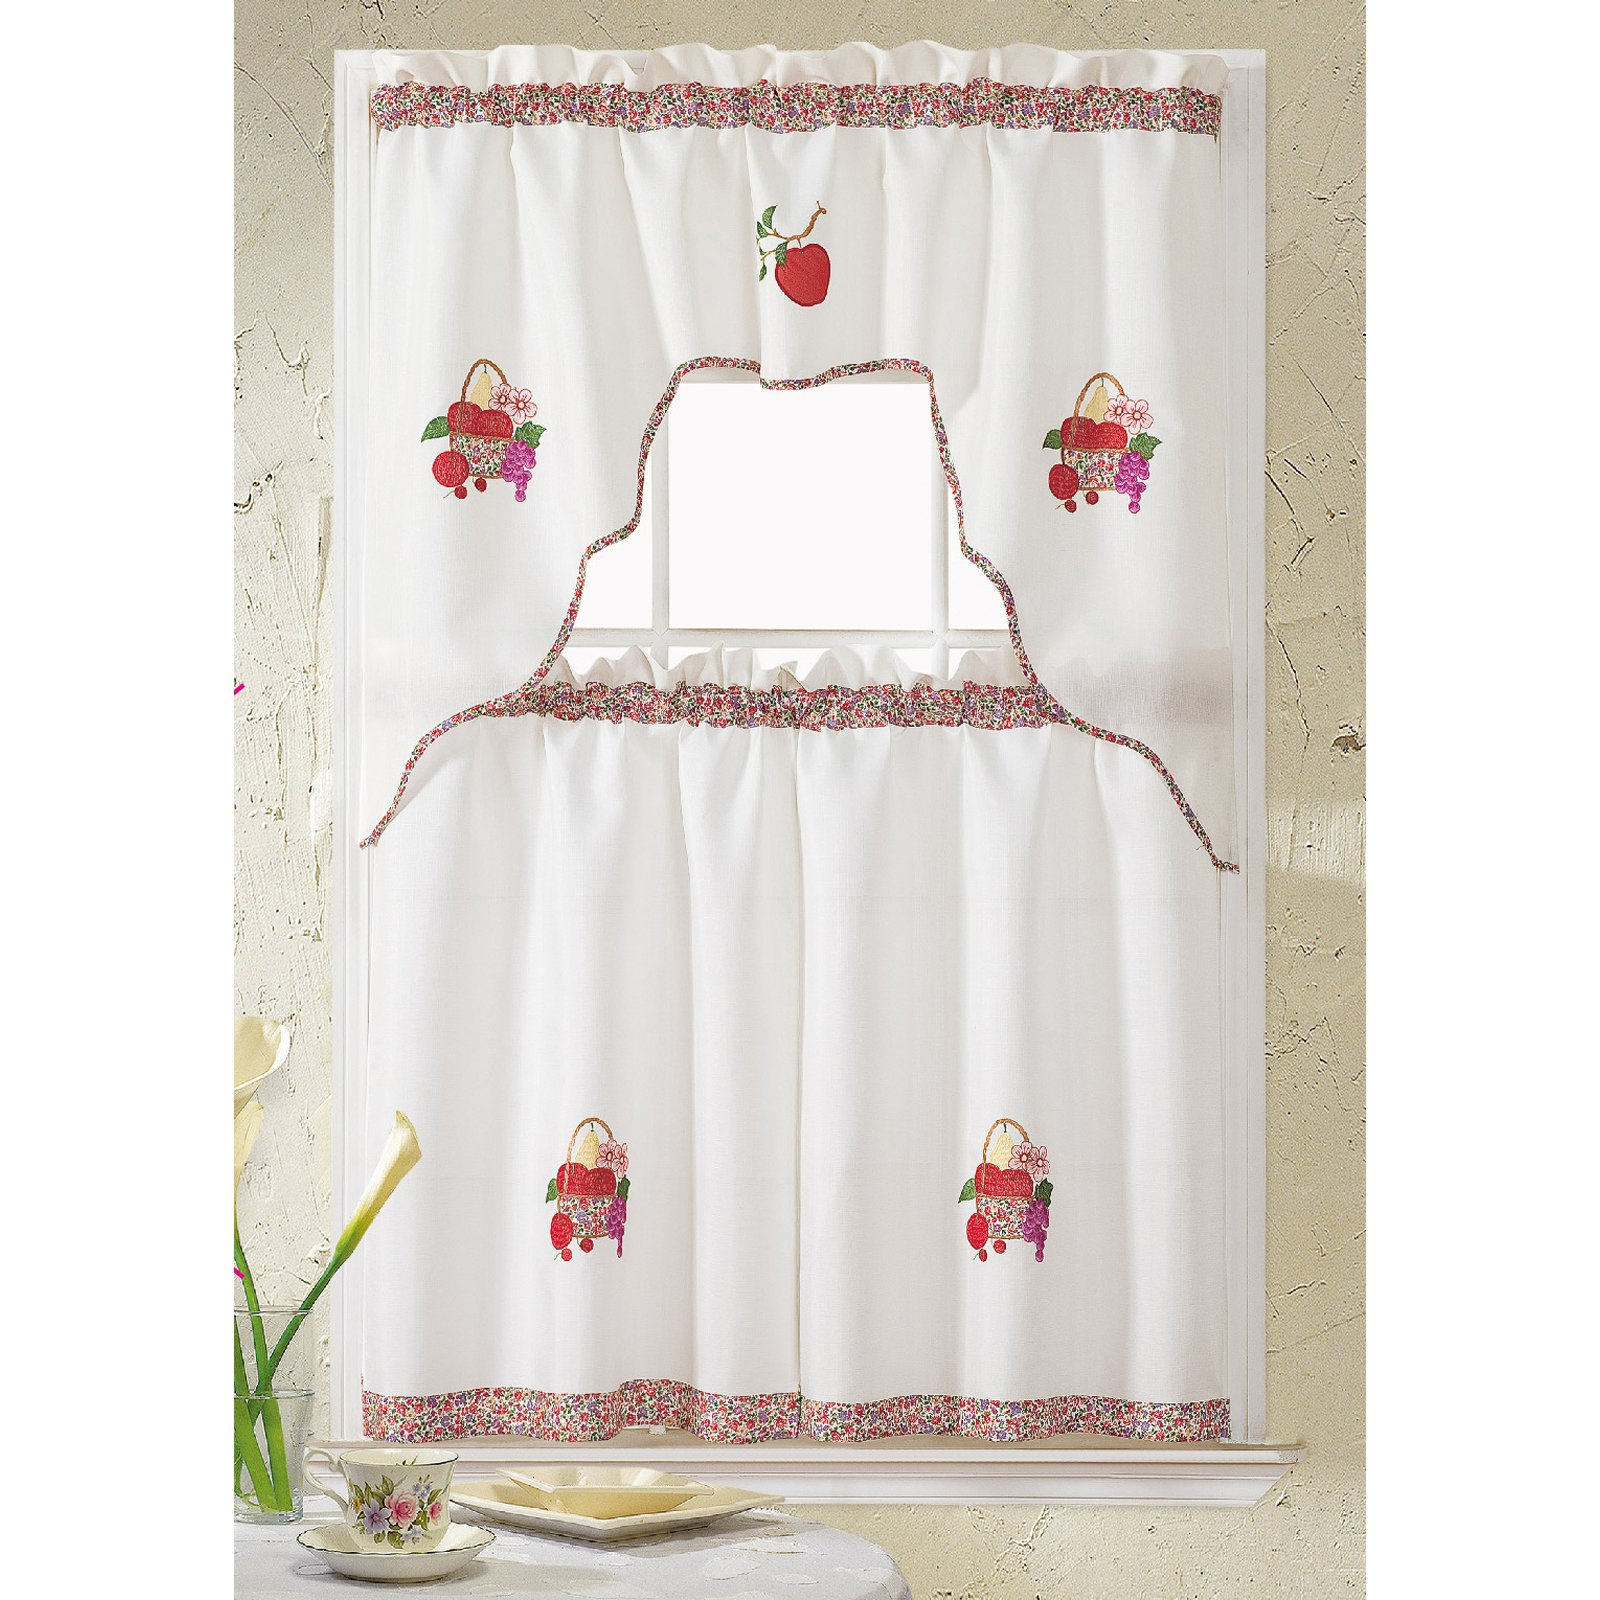 Grand Coffee Embroidered Tier And Swag Kitchen Curtain Set Within Widely Used Coffee Embroidered Kitchen Curtain Tier Sets (View 19 of 20)